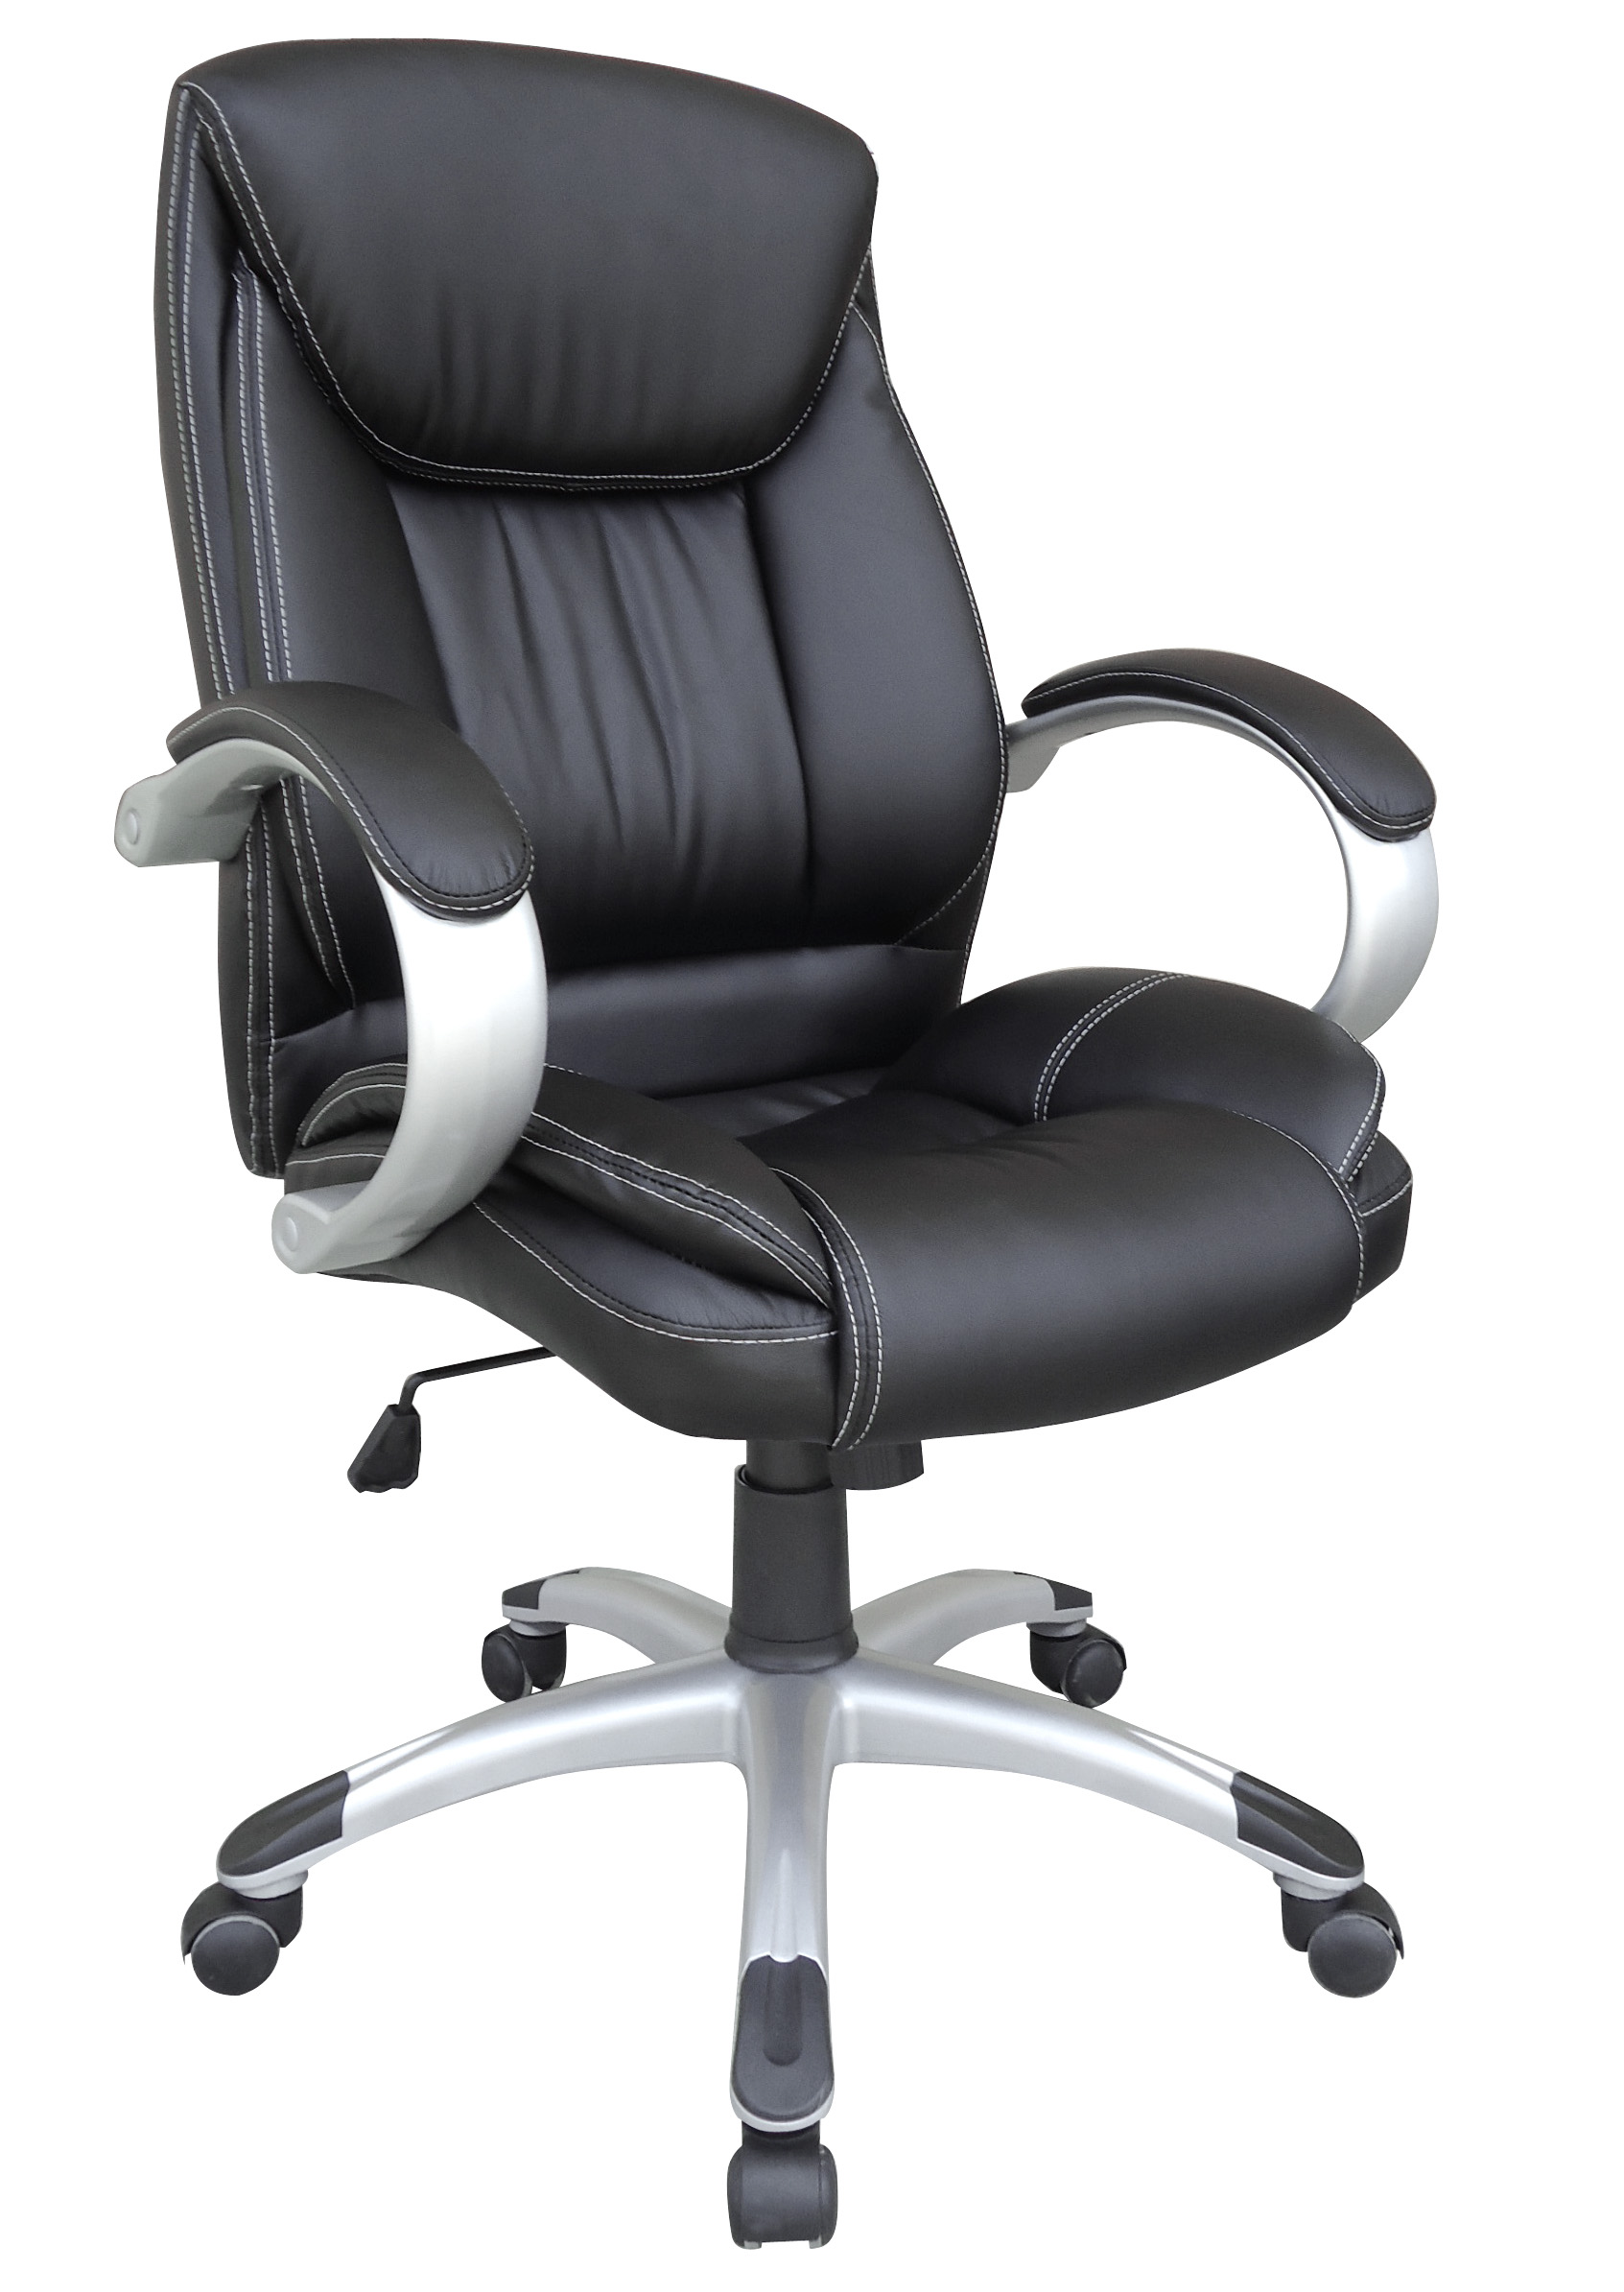 Model Style Hot Selling High Quality High Back Manager's Chair Coating Armrest With Soft Pad Office Chair